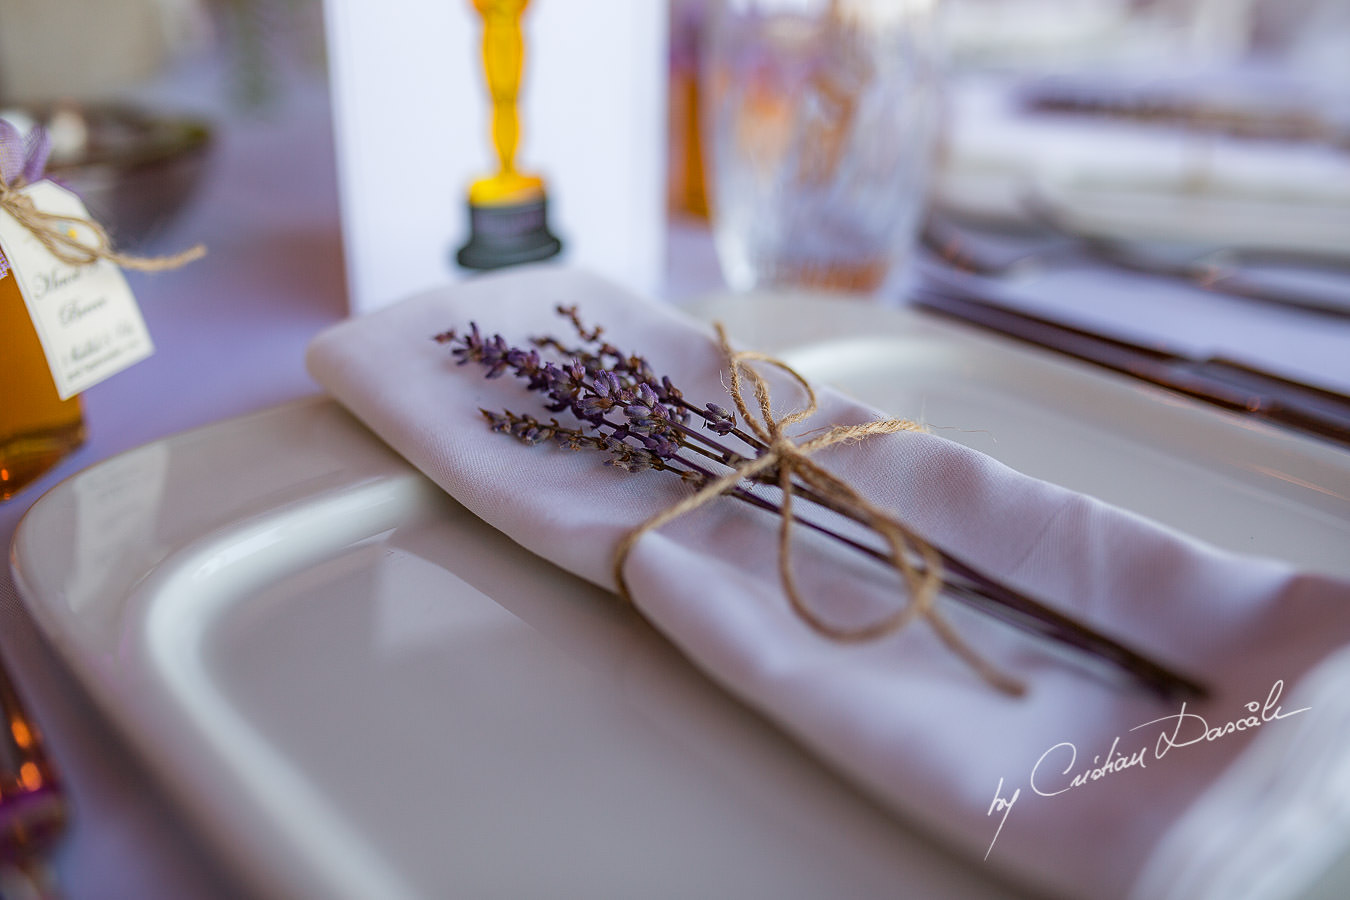 Wedding table details captured during a wedding photography at the Lighthouse Limassol, by Cyprus Photographer Cristian Dascalu.